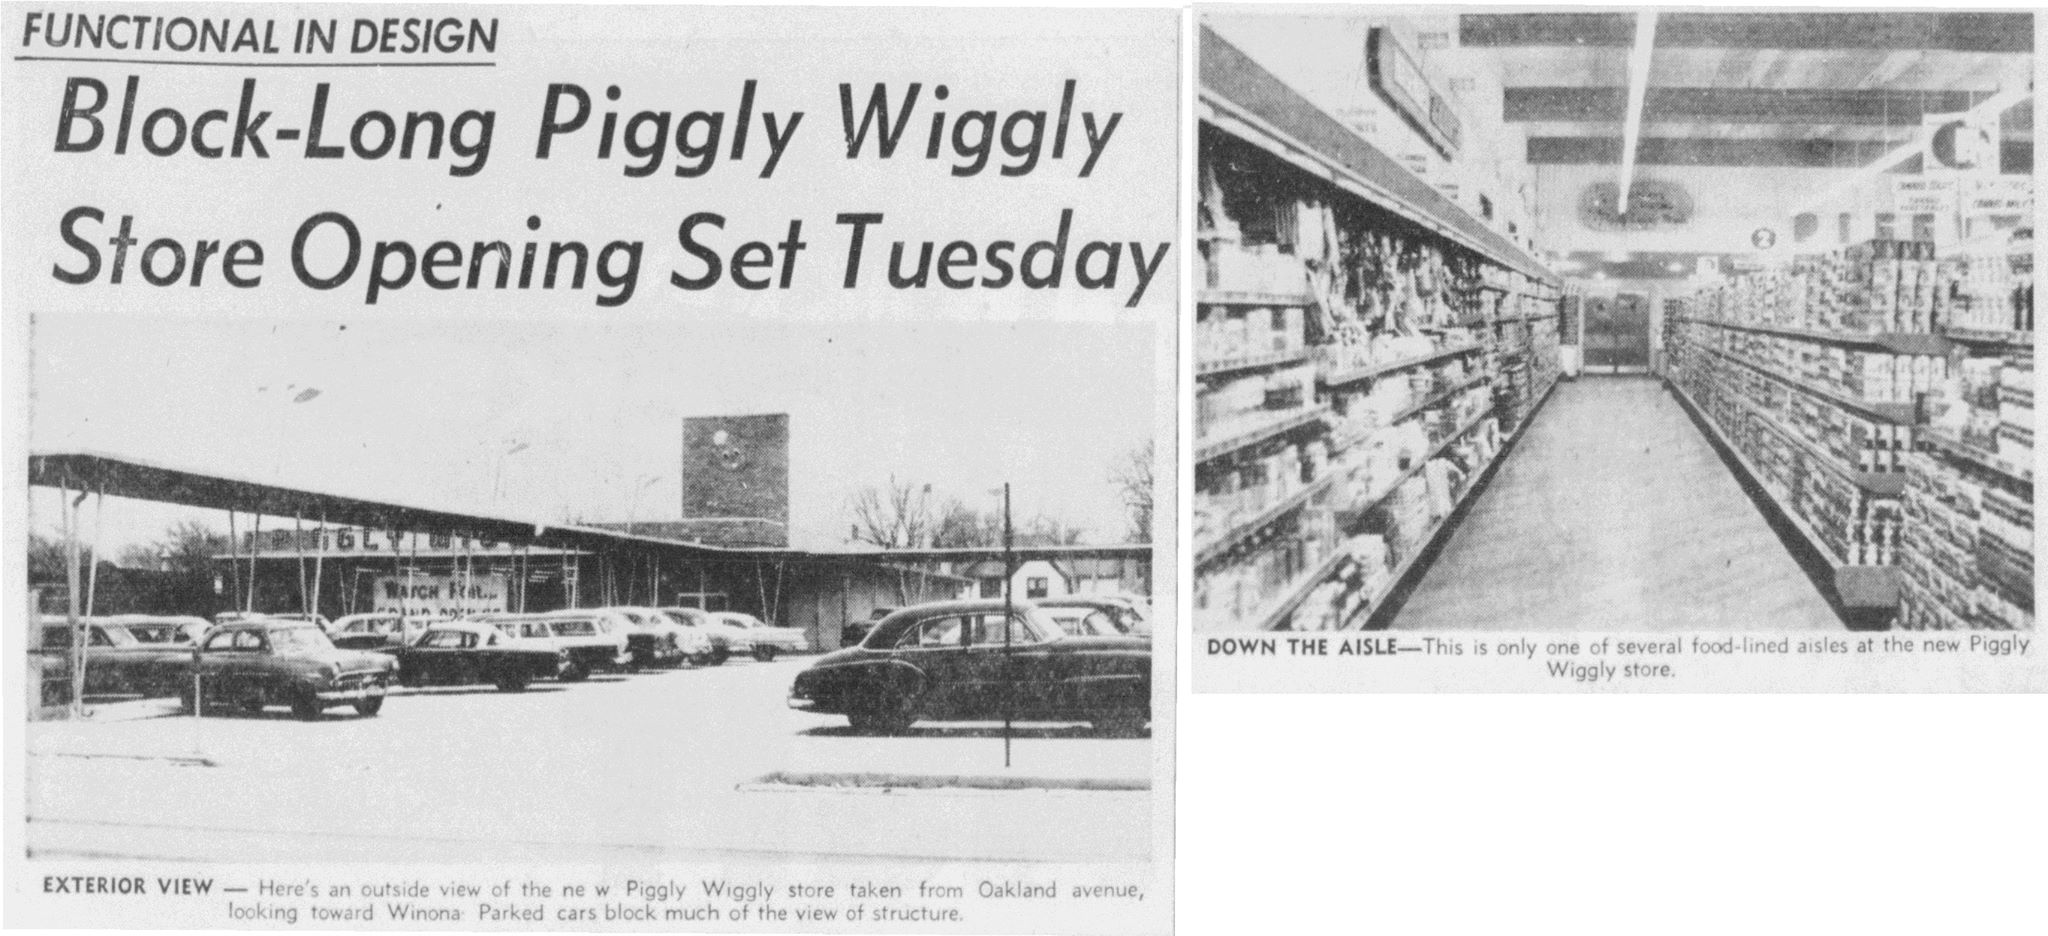 1958 Piggly Wiggly article - January 20th